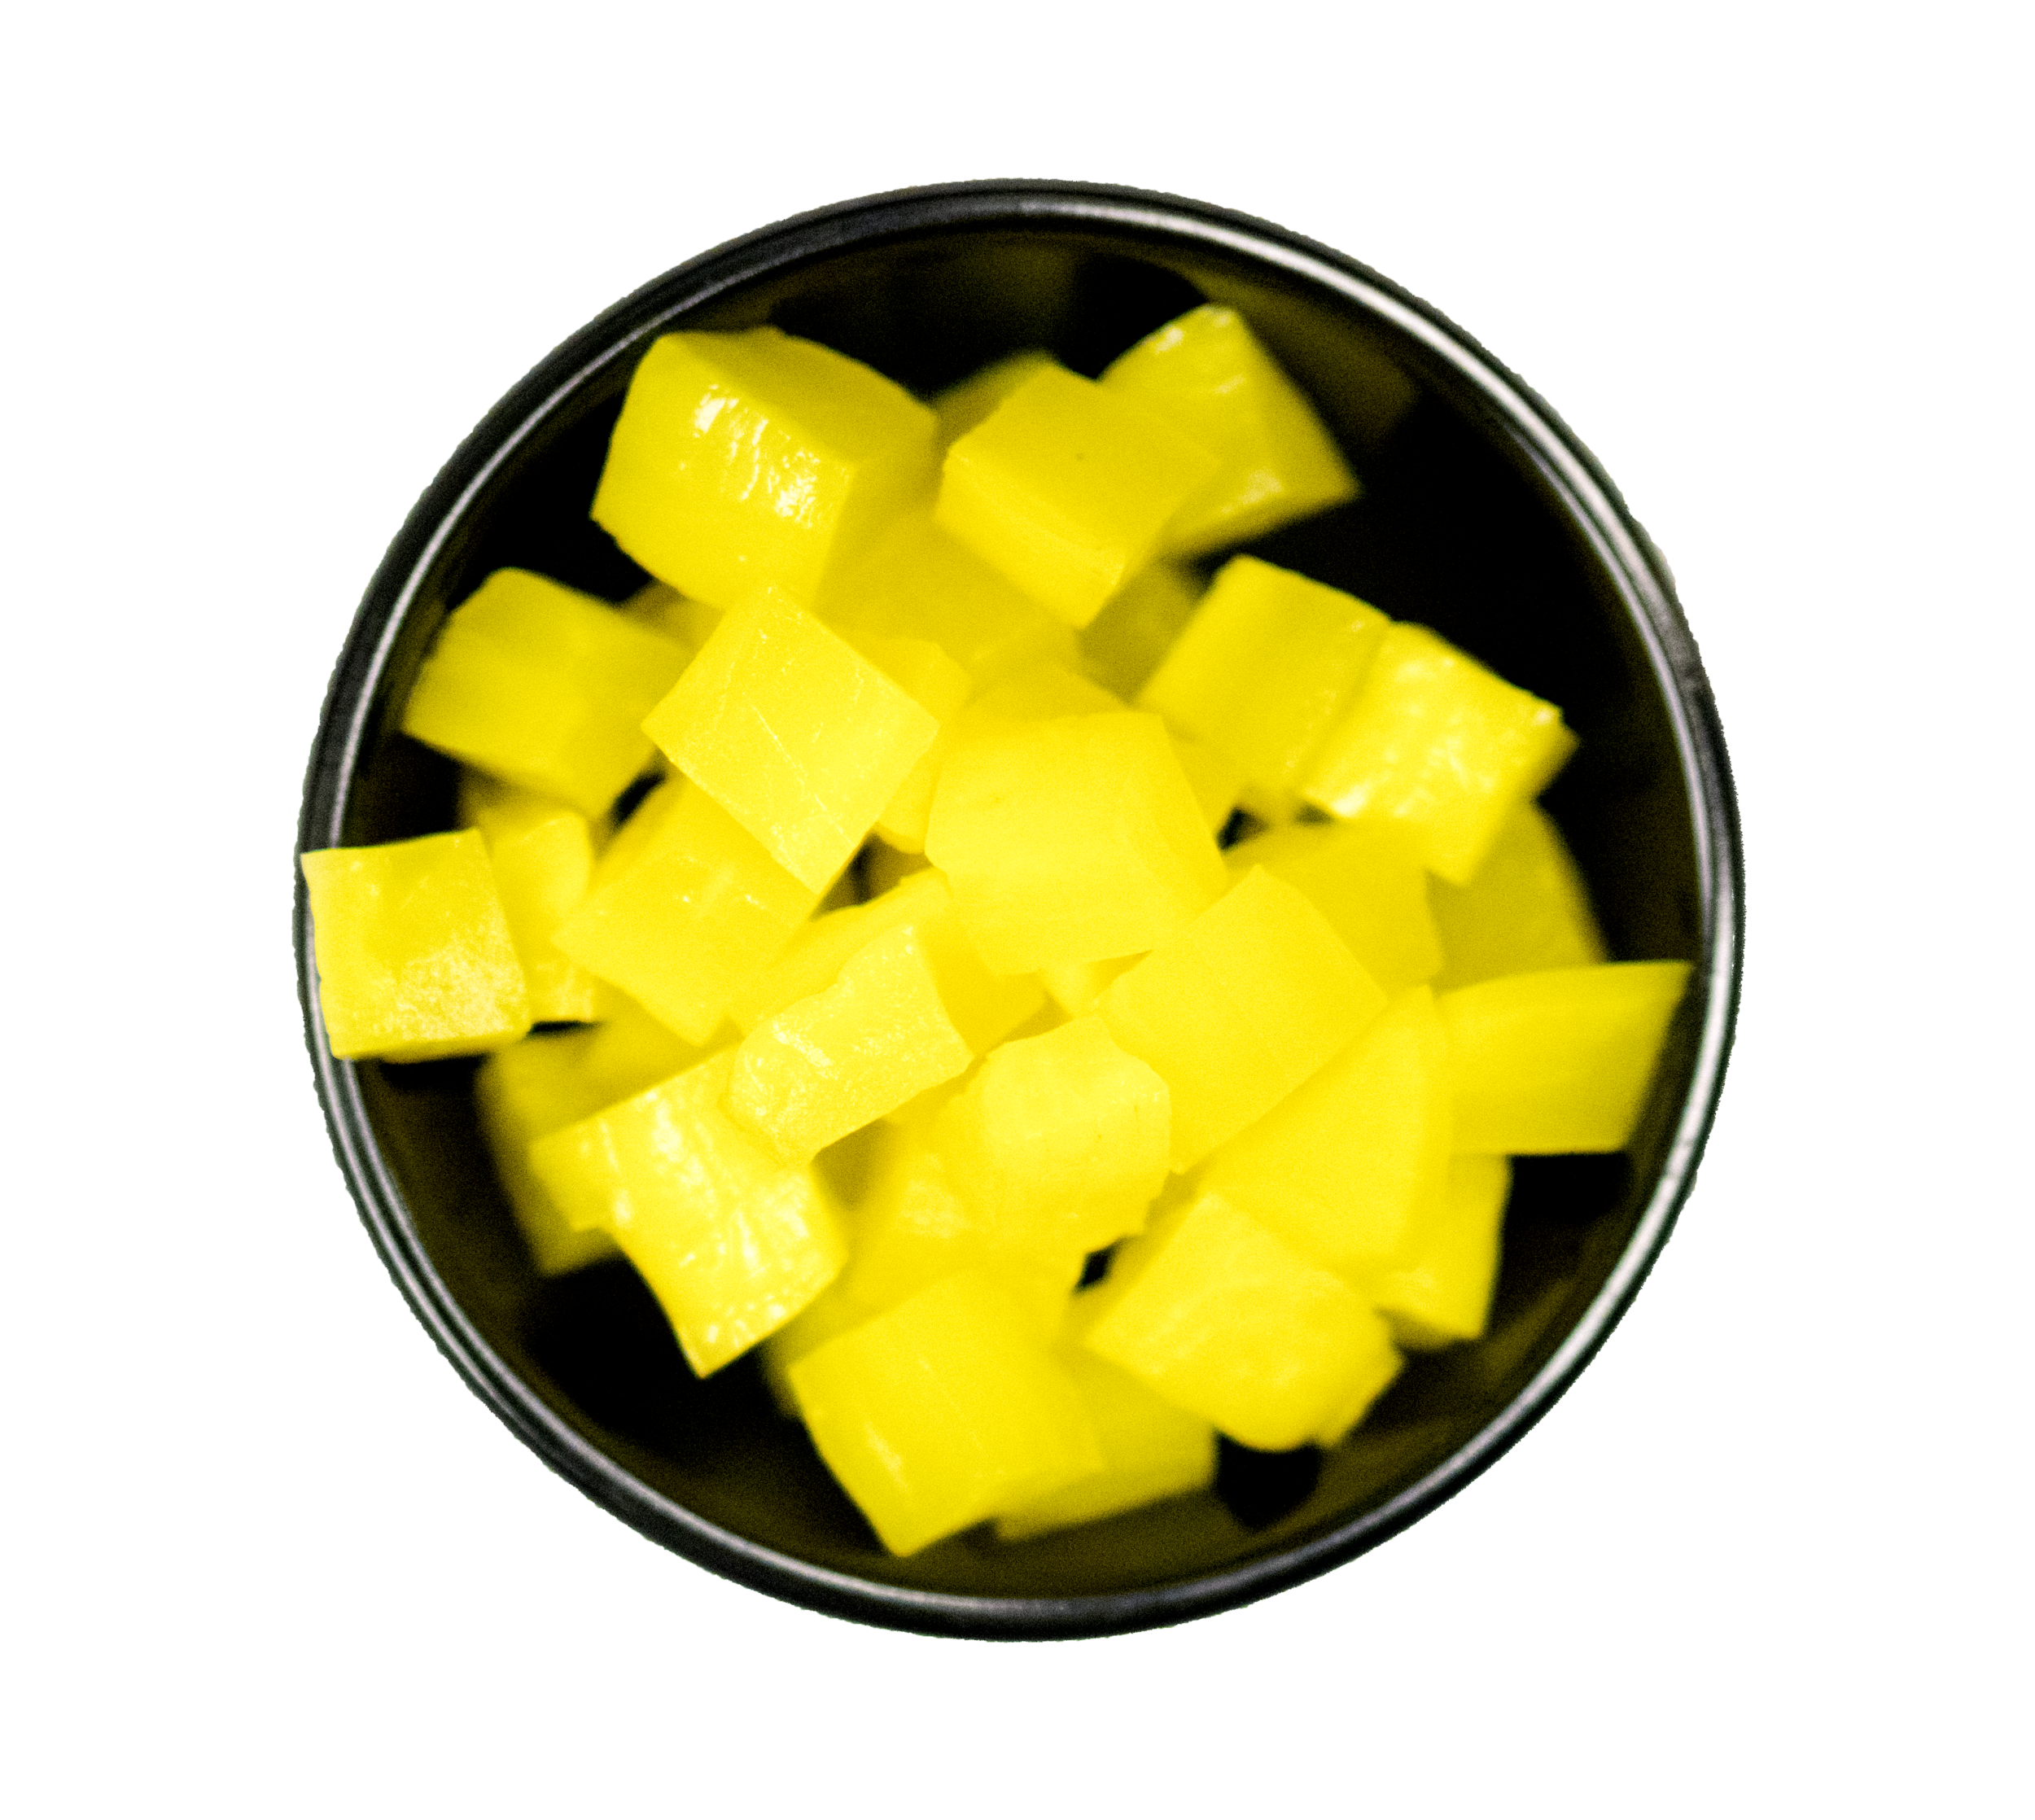 YELLOW DAIKON